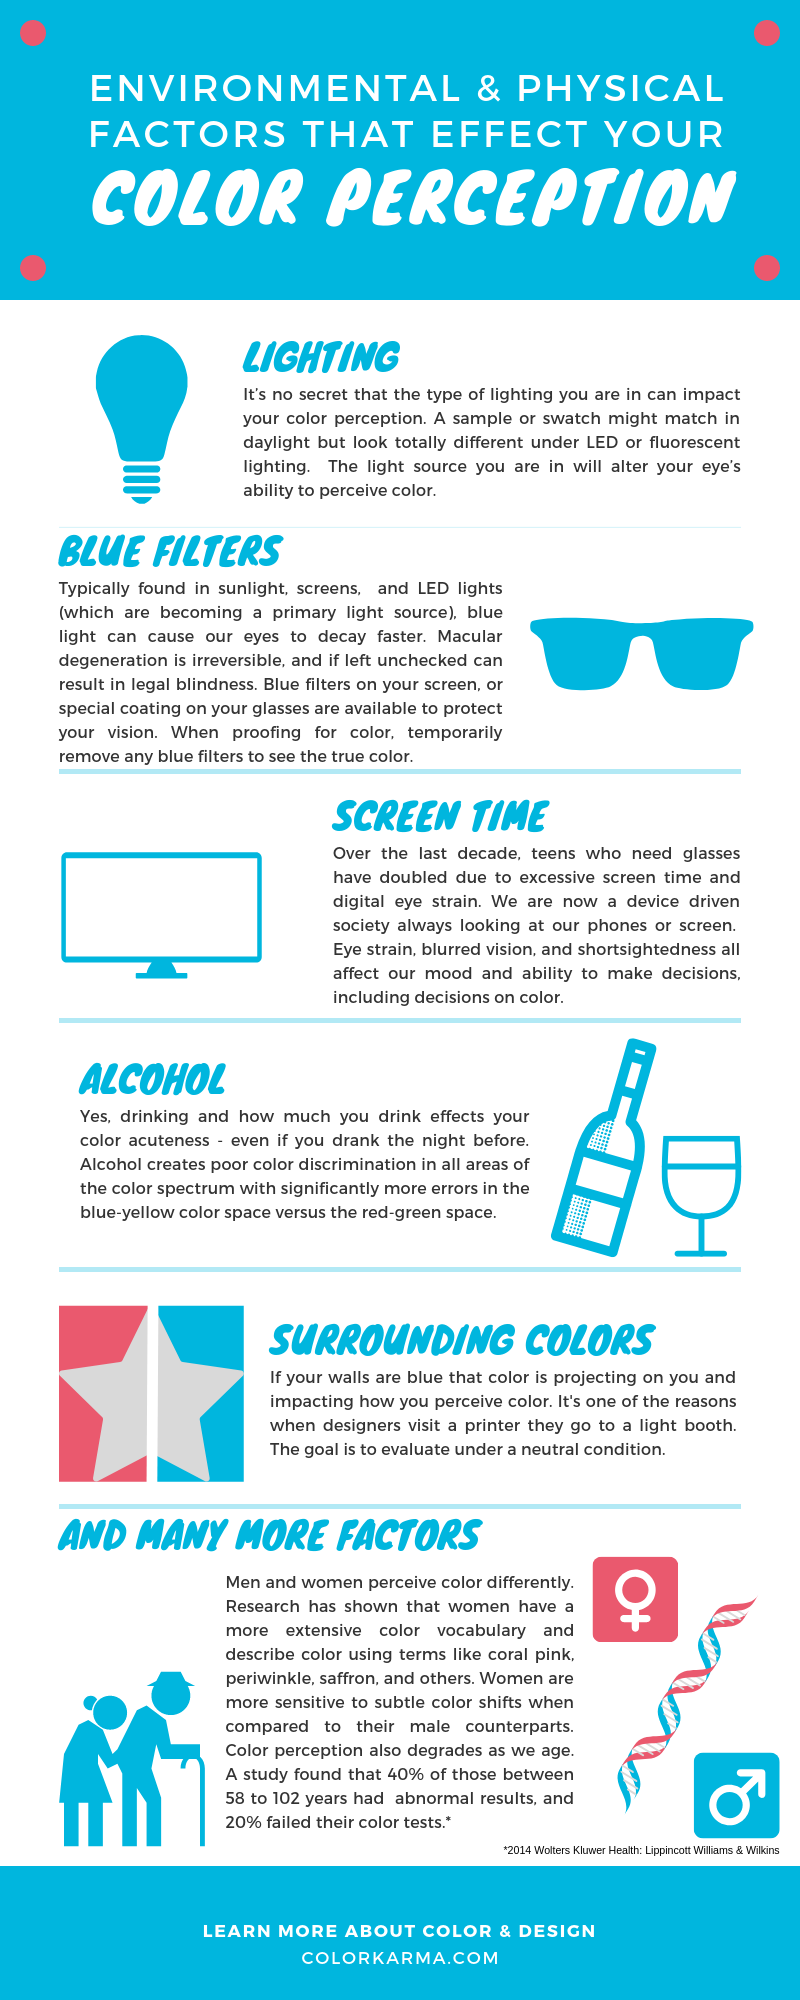 A list of Environmental and Physical Factors that Impact Your Color Perception